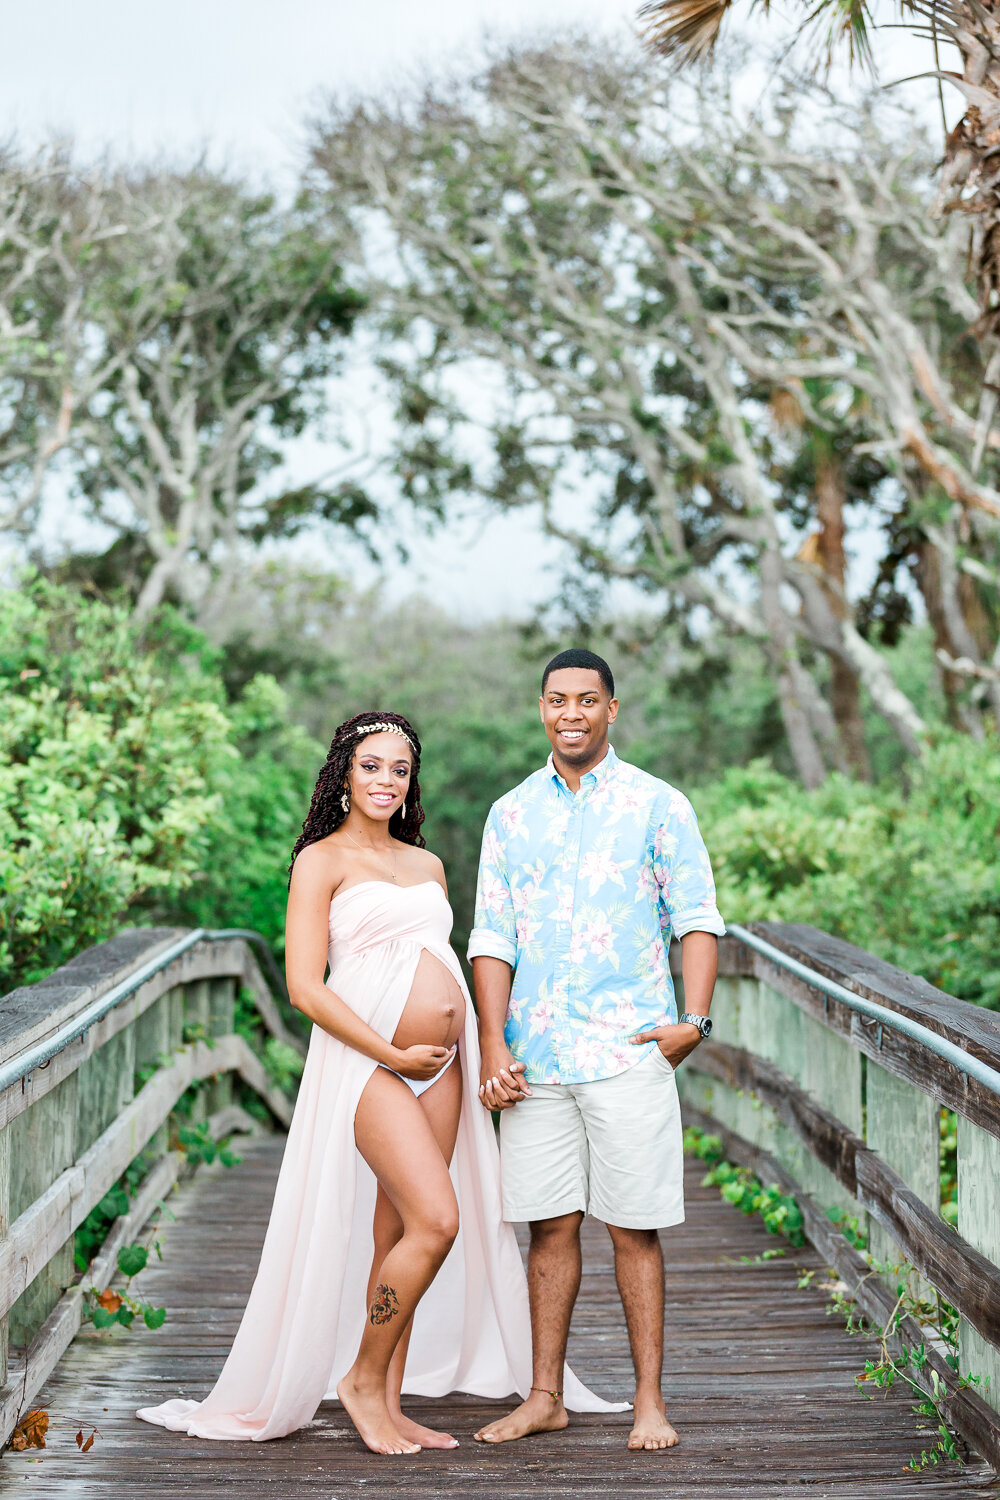 Maternity photoshoot on the boardwalk right after the rain in Hanna Park